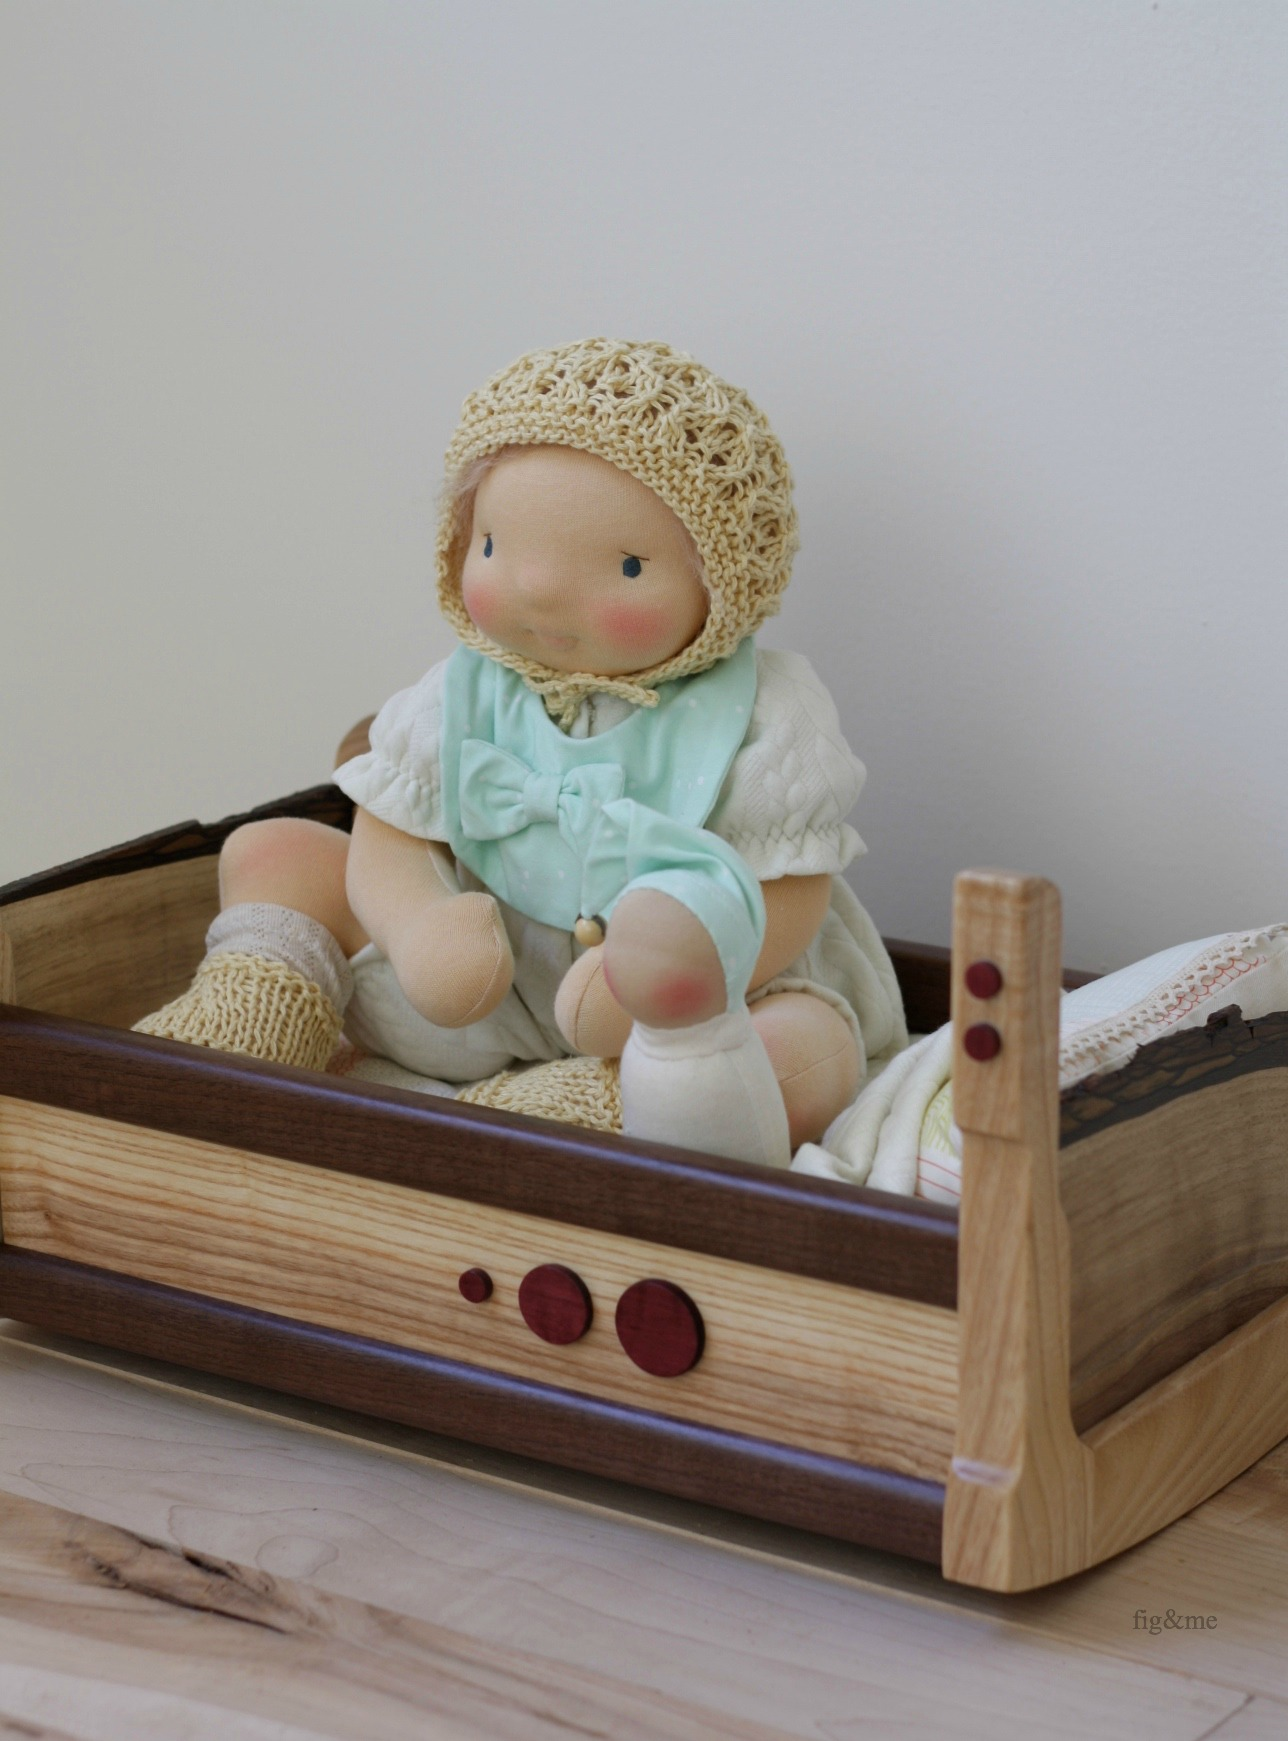 Robina and her wooden cradle, by Fig and me.